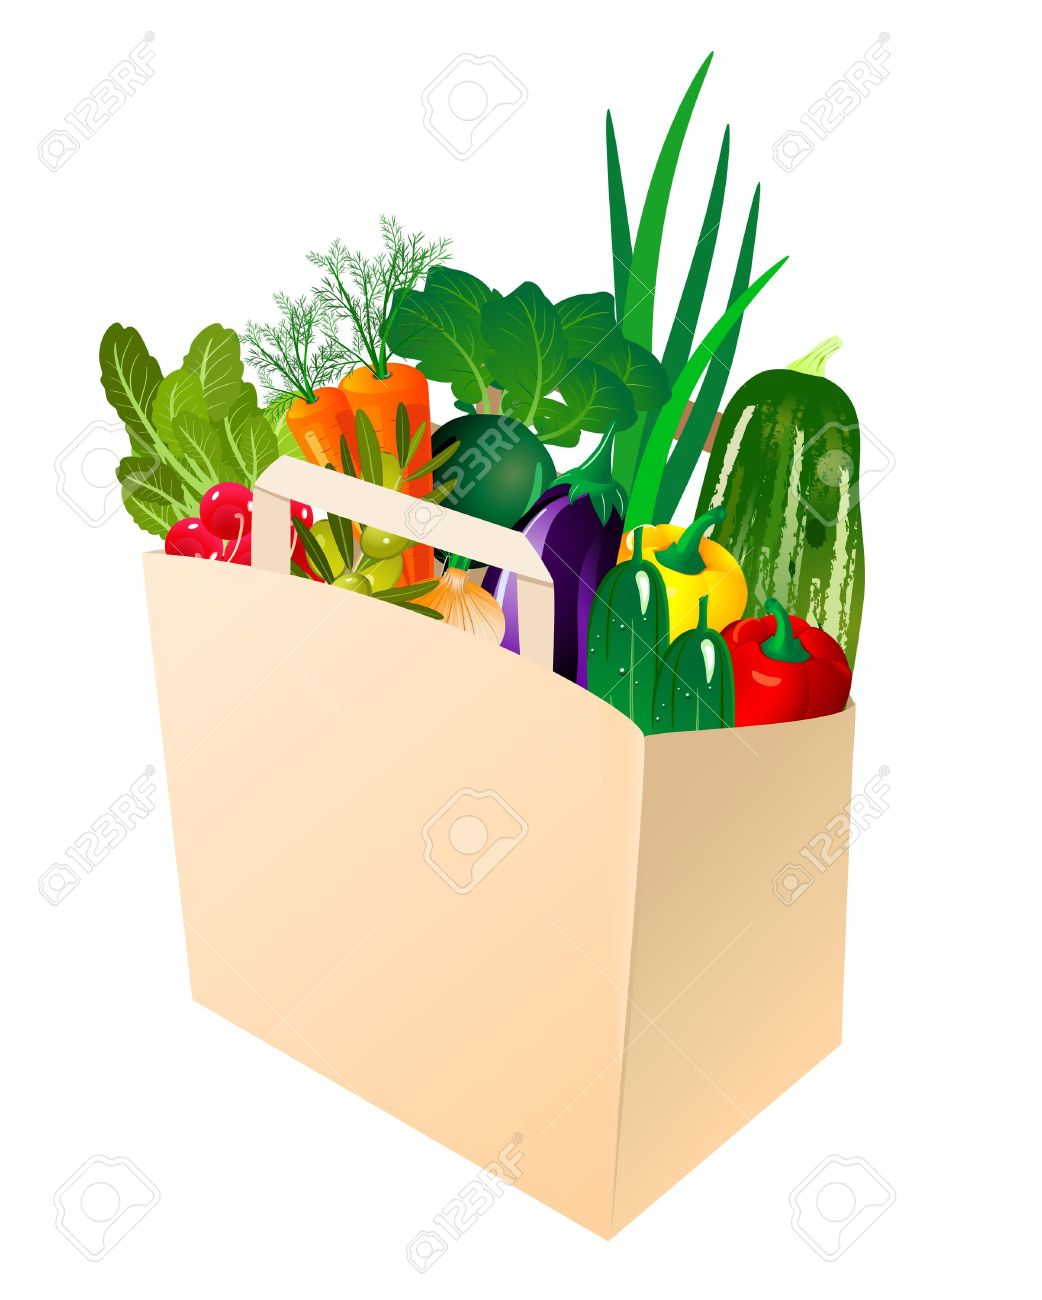 Paper Bag With Fresh Vegetables Royalty Free Cliparts, Vectors ...